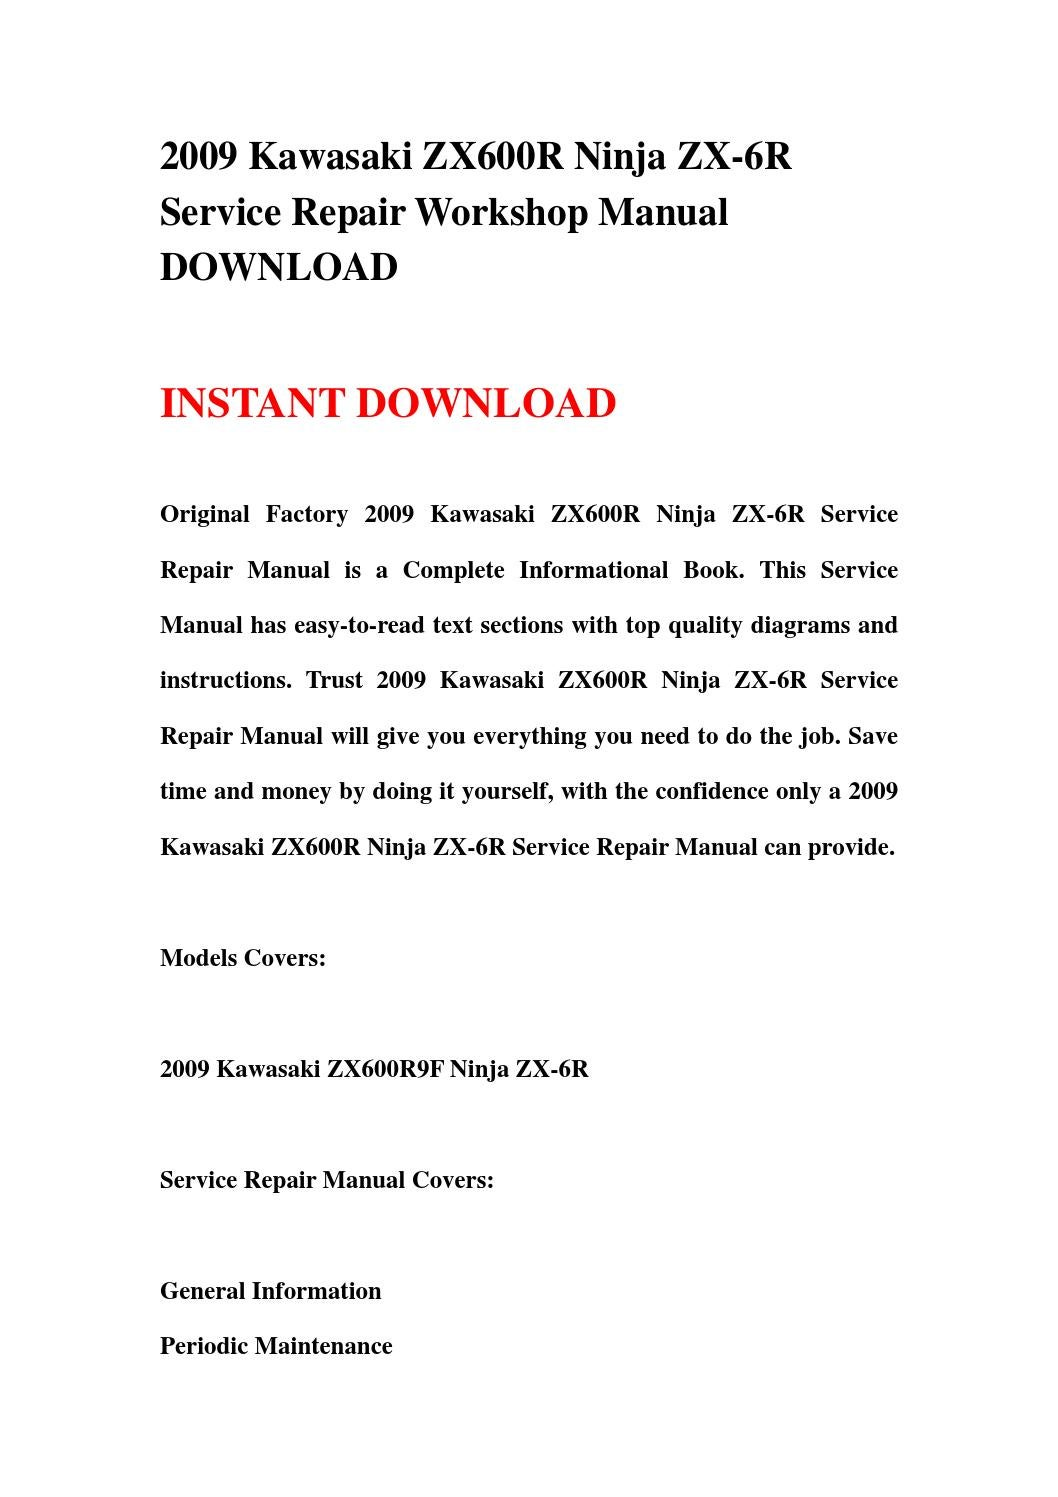 2009 kawasaki zx600r ninja zx 6r service repair workshop manual download by  hnjhhnj - issuu